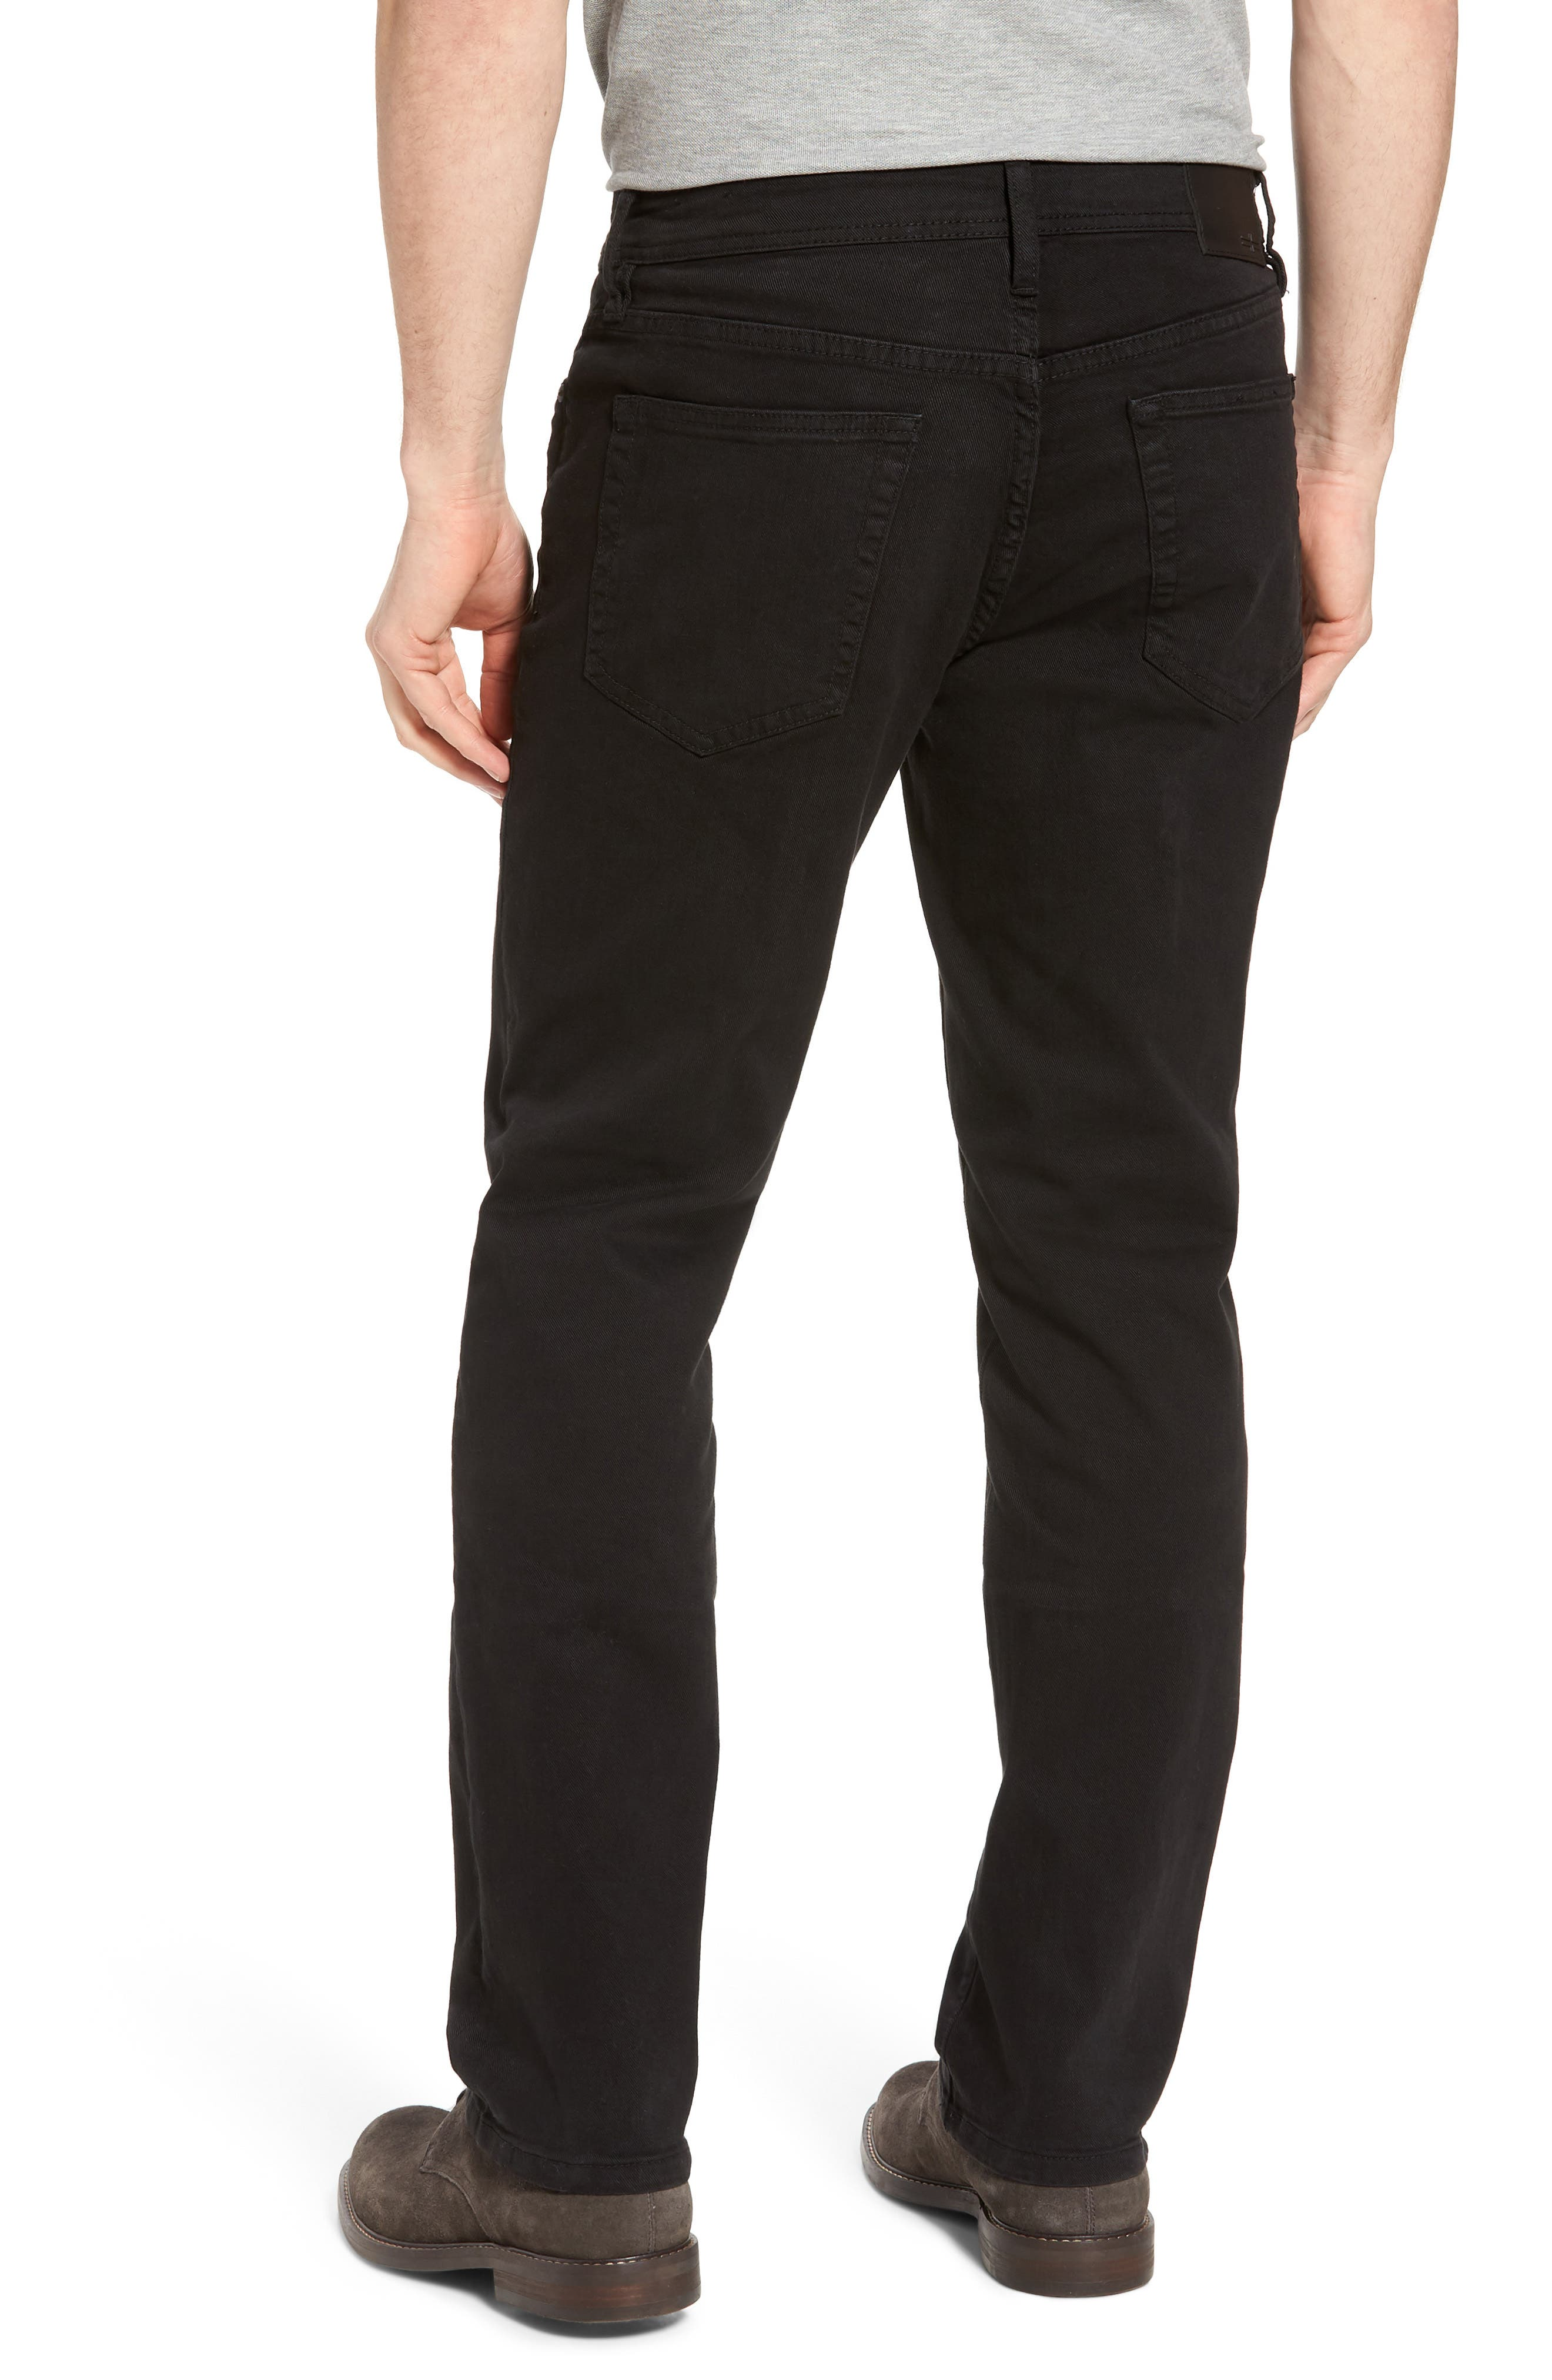 Jeans Co. Regent Relaxed Fit Jeans,                             Alternate thumbnail 2, color,                             Black Rinse